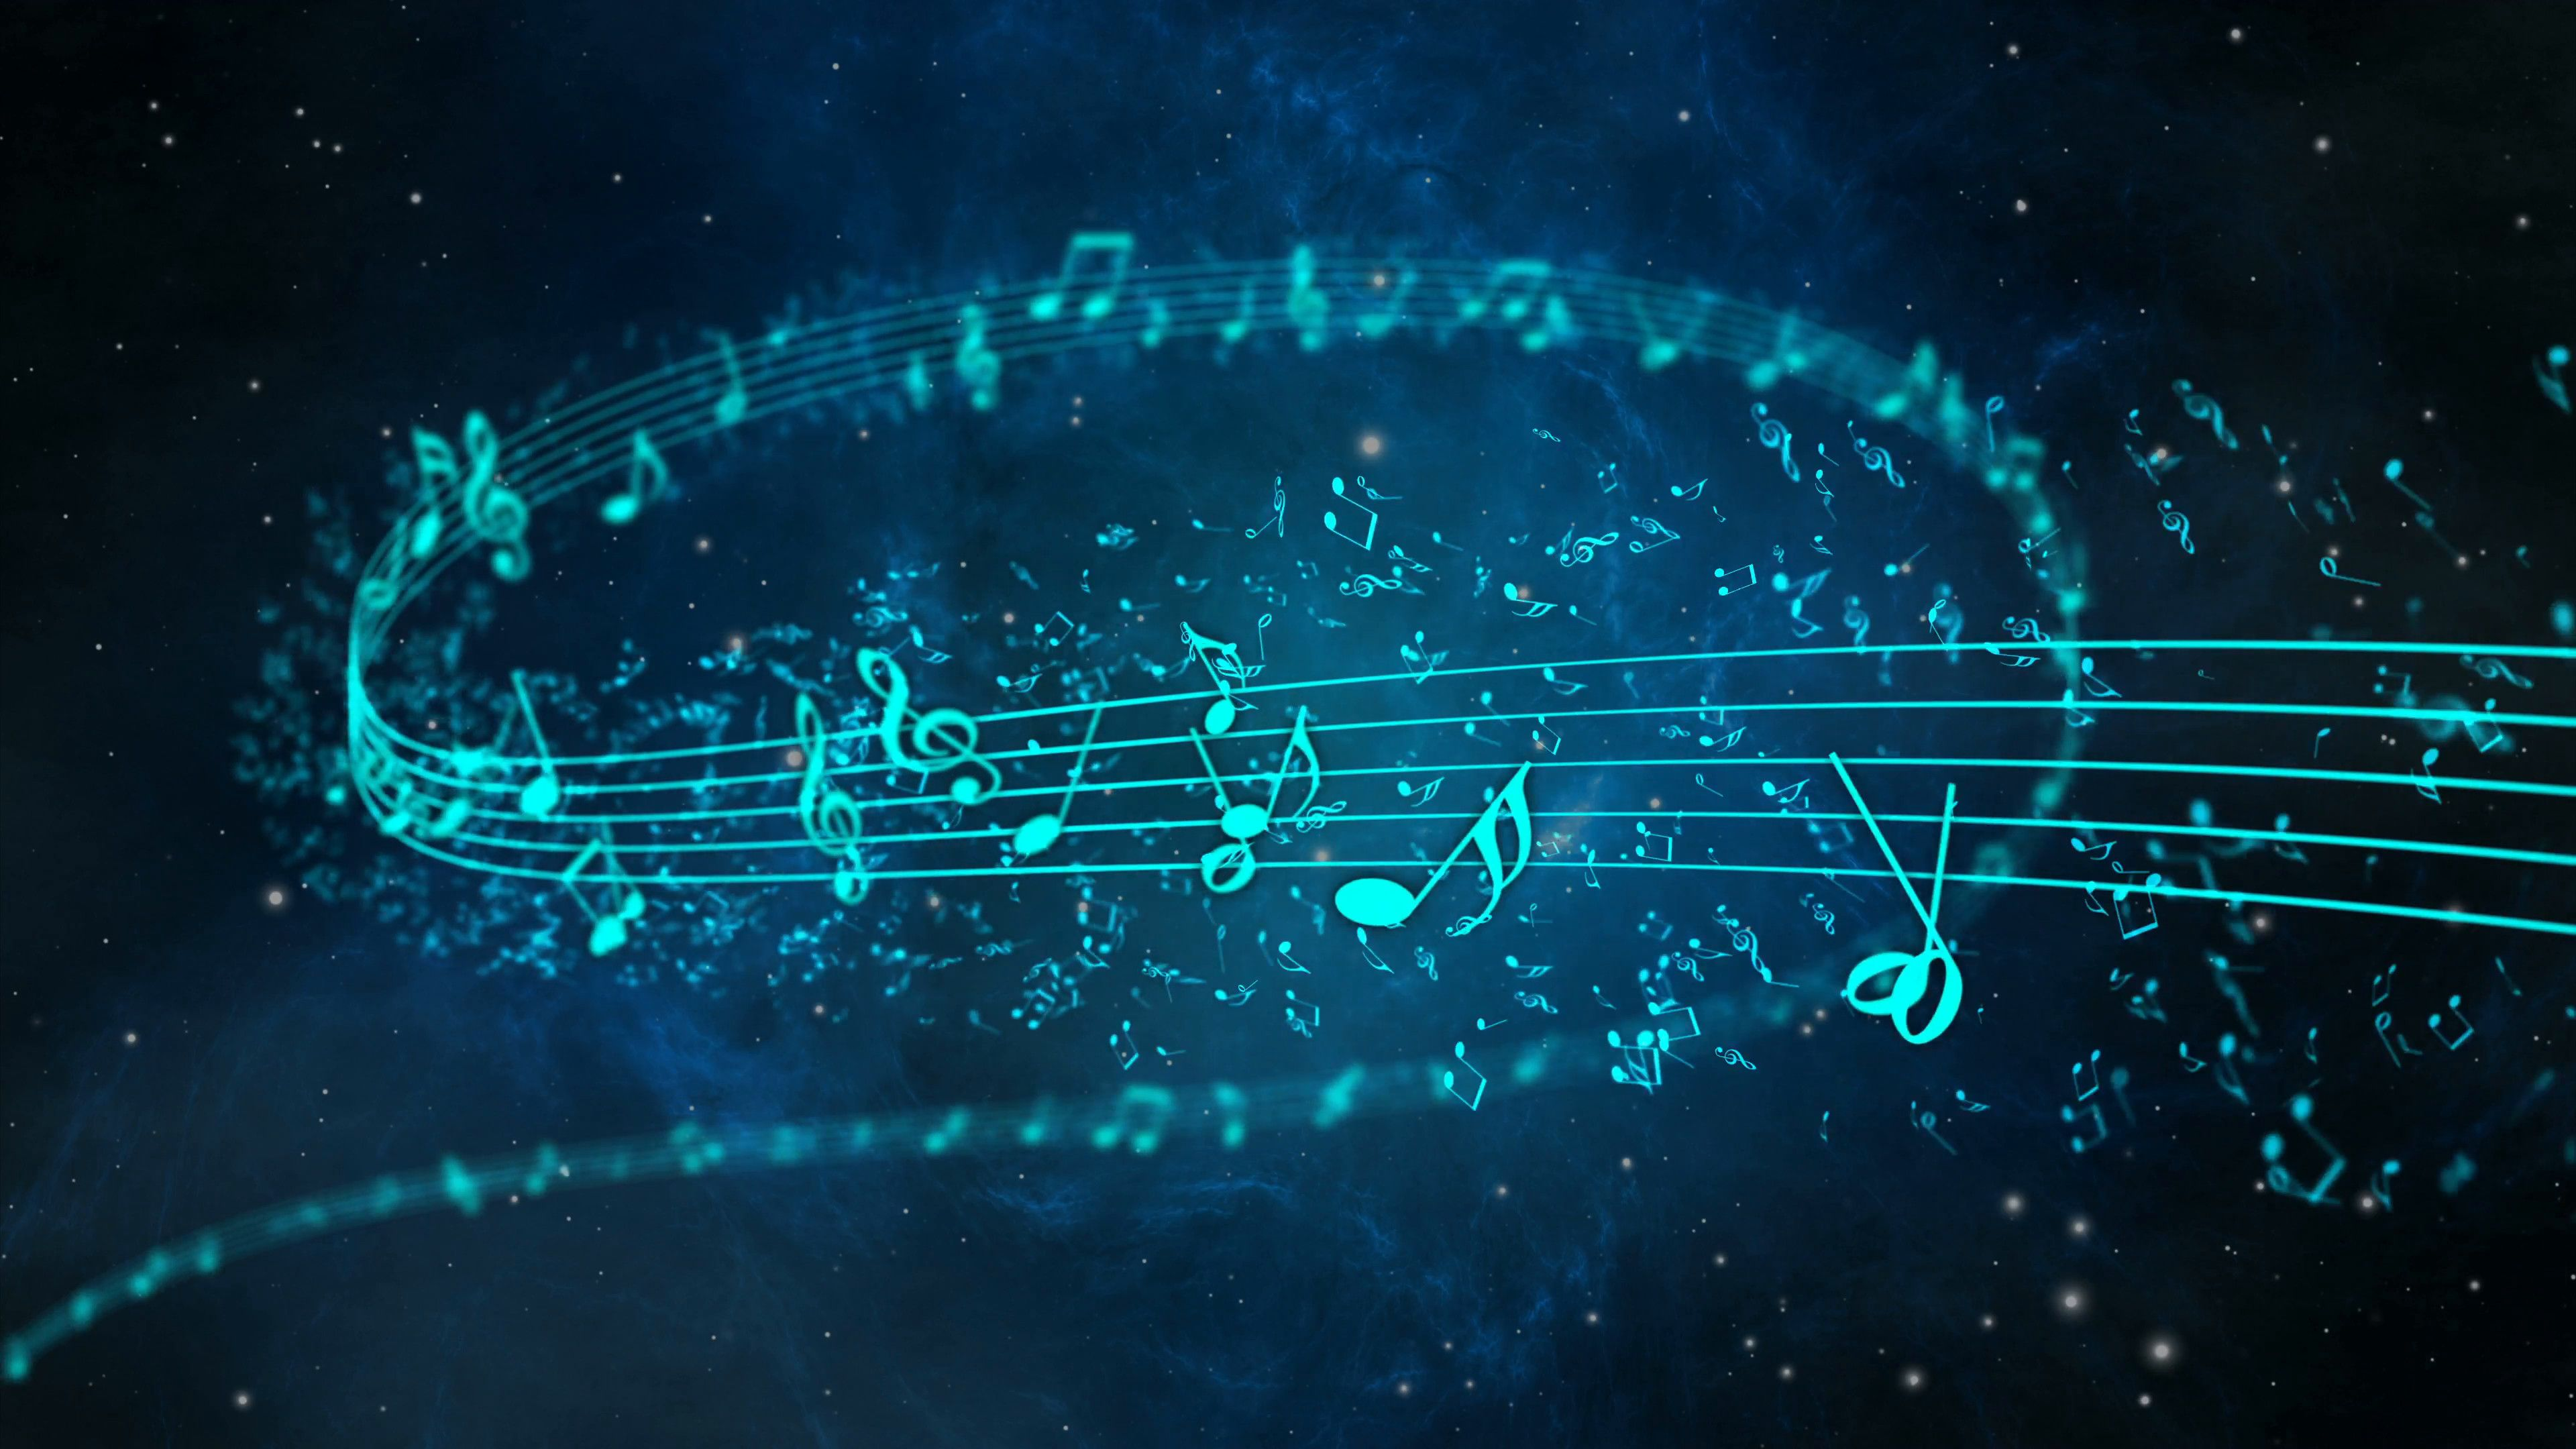 Music Background Image Music Backgrounds Music Notes Background Background Images